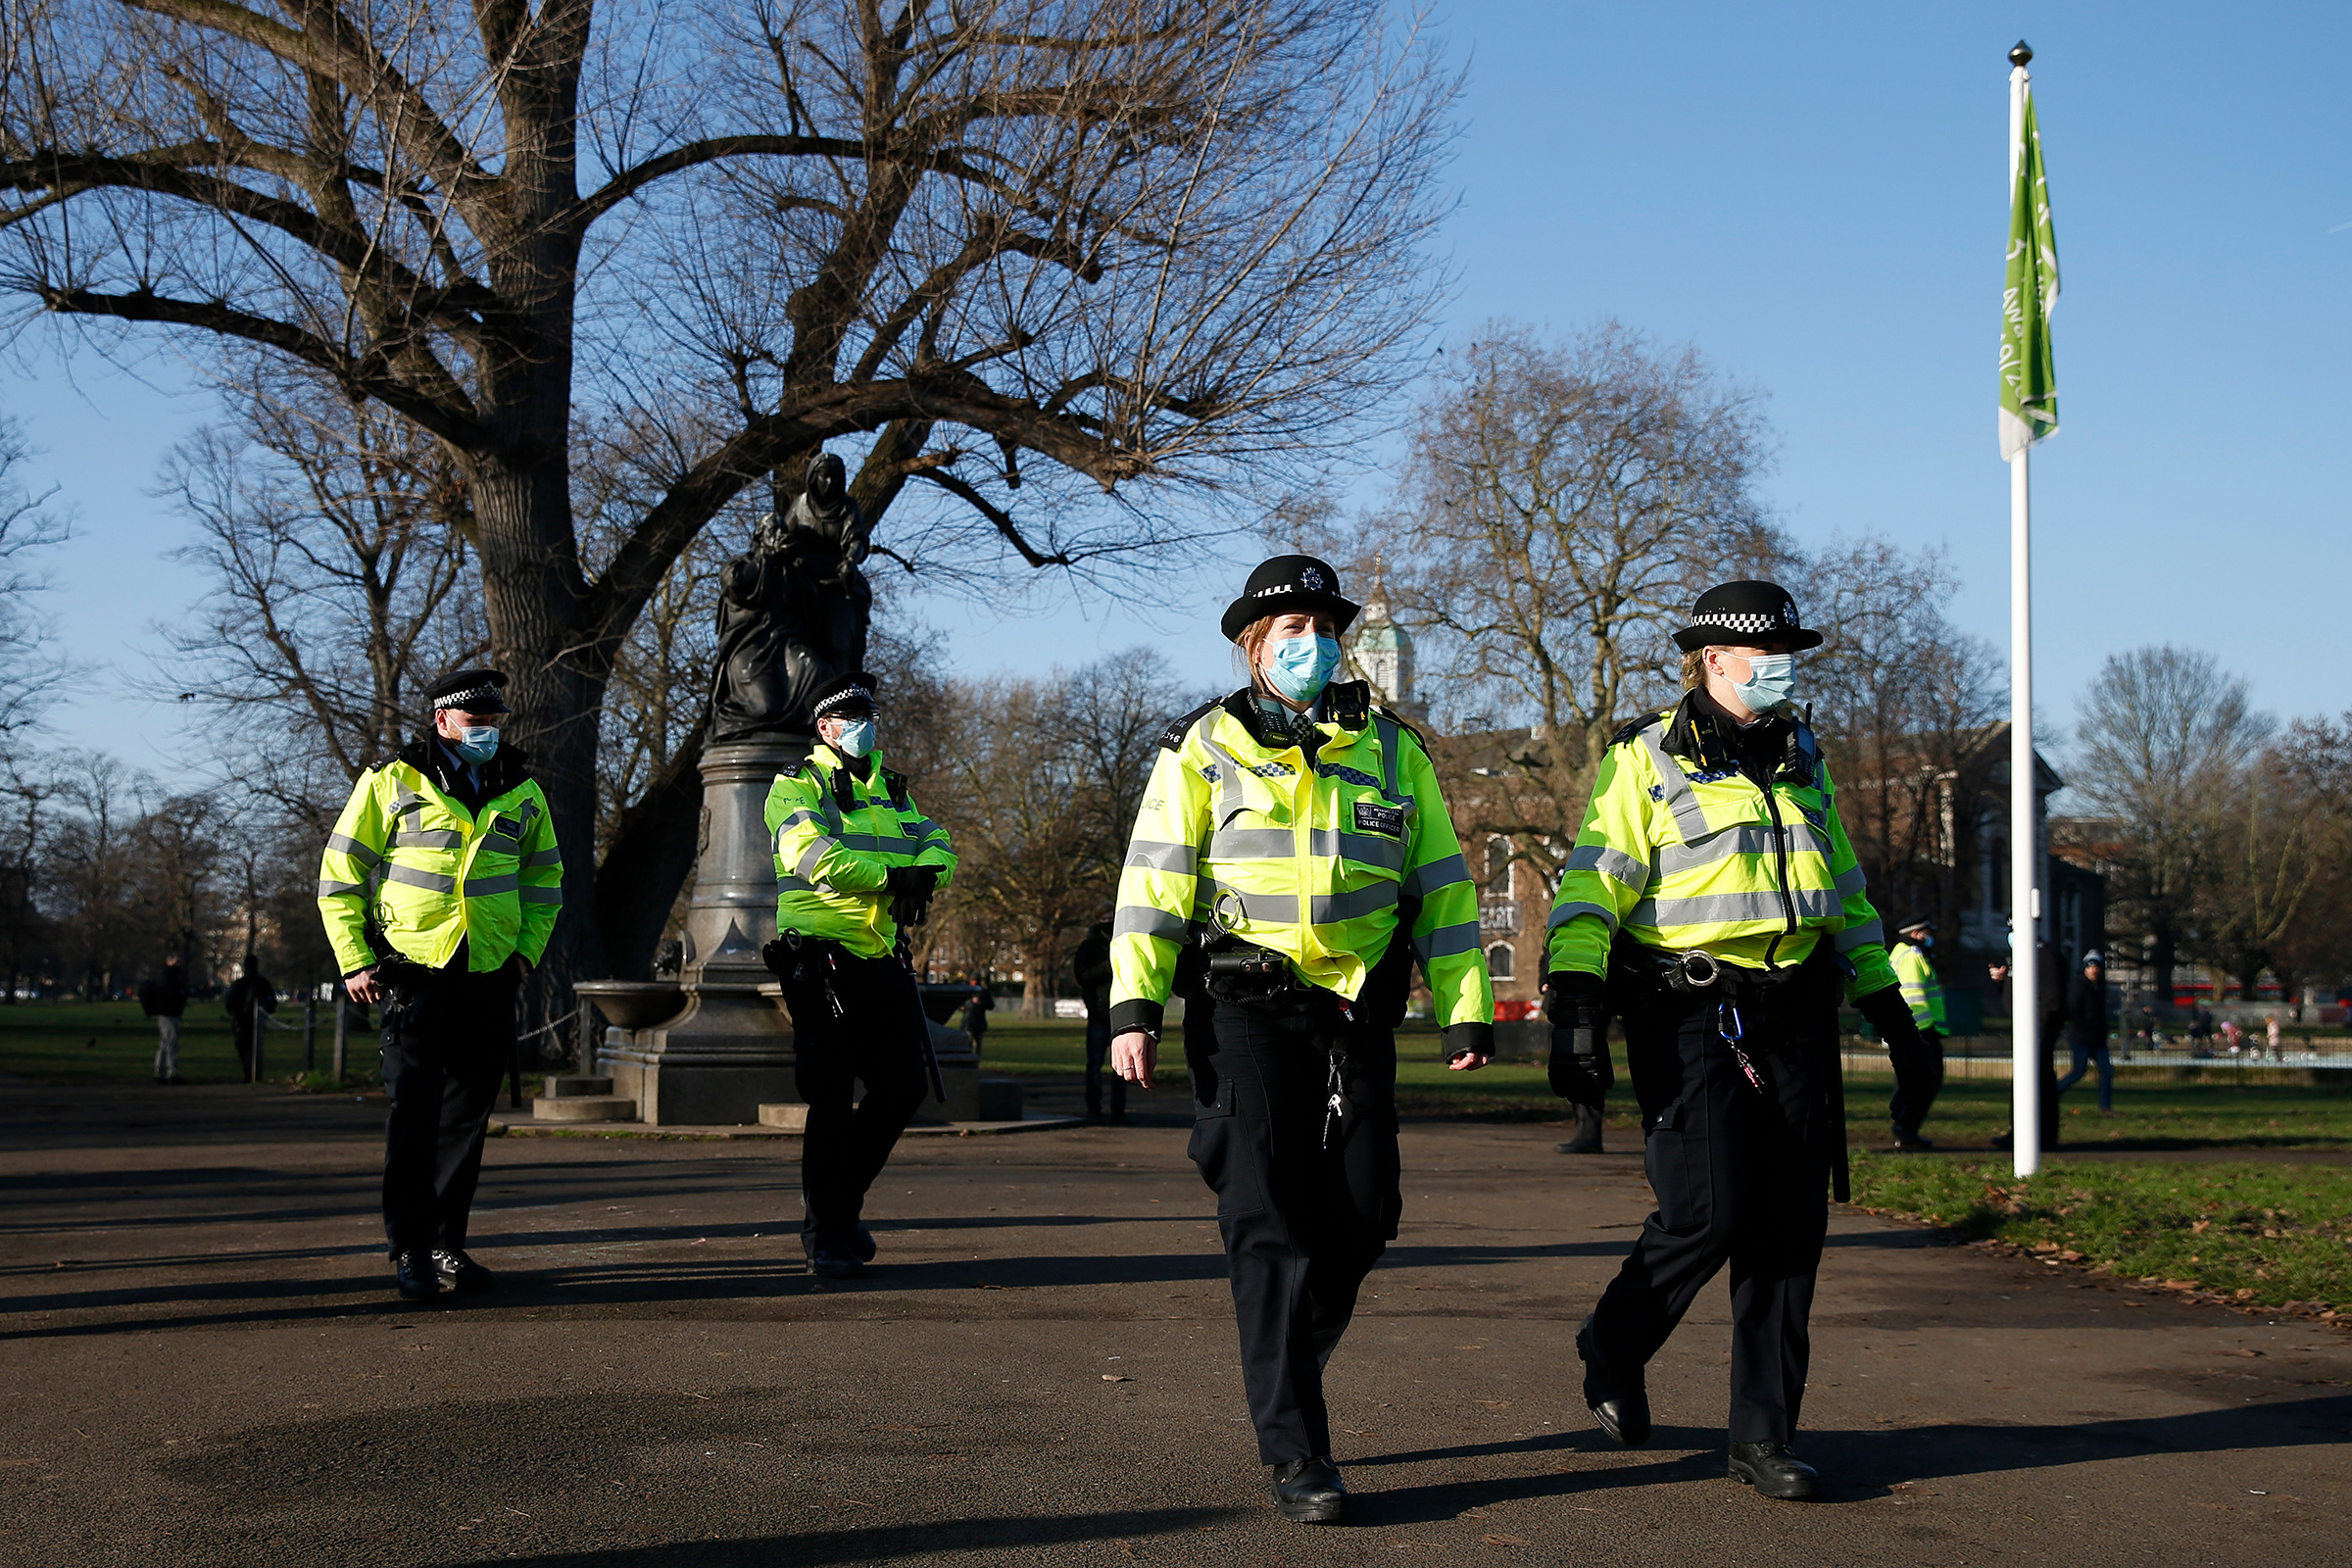 Police patrol Clapham Common for people not complying with coronavirus safety protocols on January 9 in London.